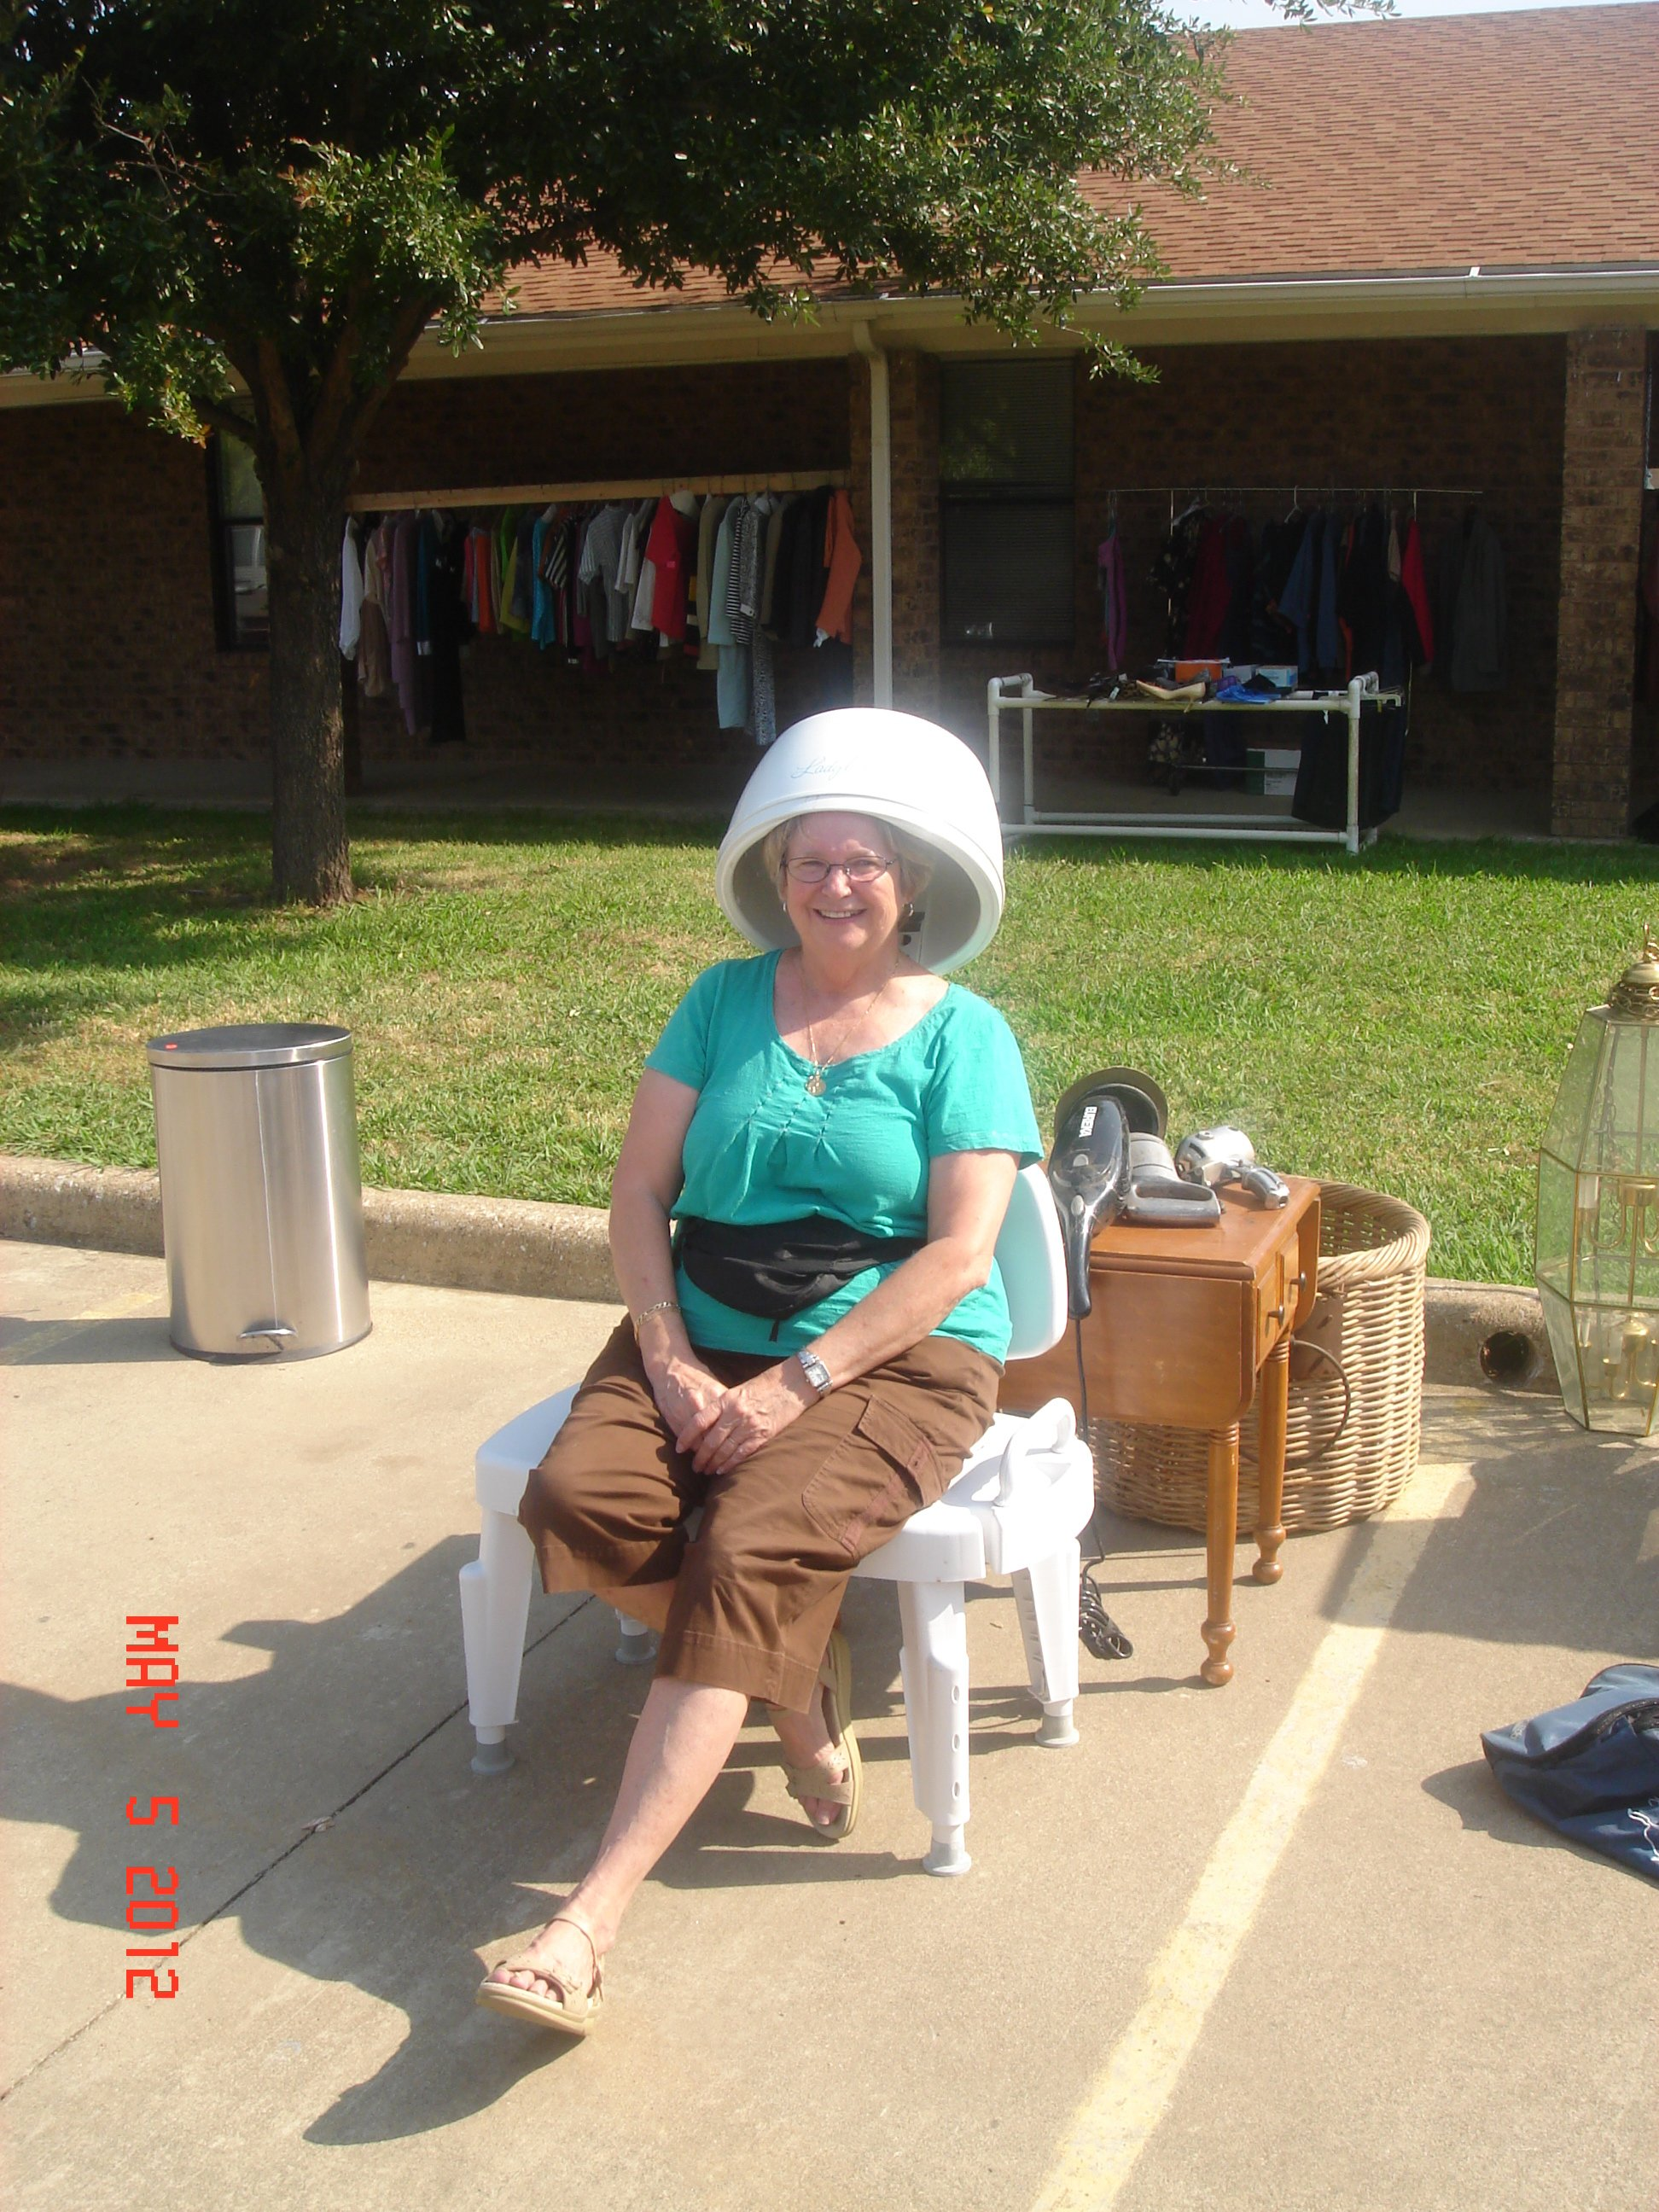 Rummage Sale lady sitting in hair dryer